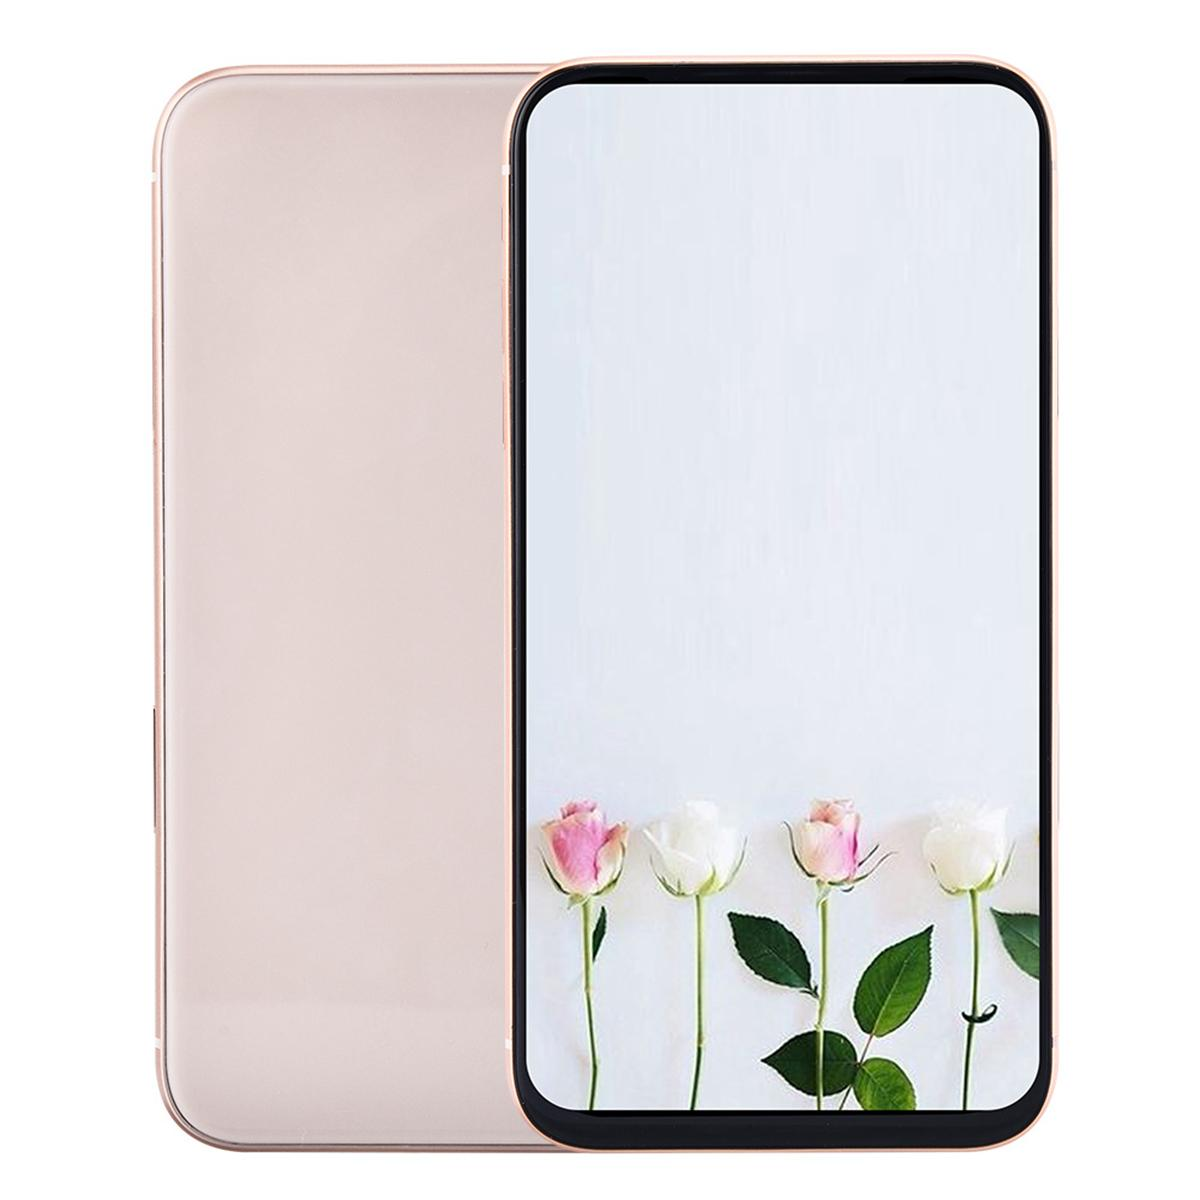 1GB 16GB+32GB i12 Pro 5G Smart Phone V3 6.1 inch All Screen HD+ Android OS Face ID Quad Core 3G WCDMA GPS 3 Cameras Smartphone Metal Frame 2.5D Glass Back Cover 256GB 512GB